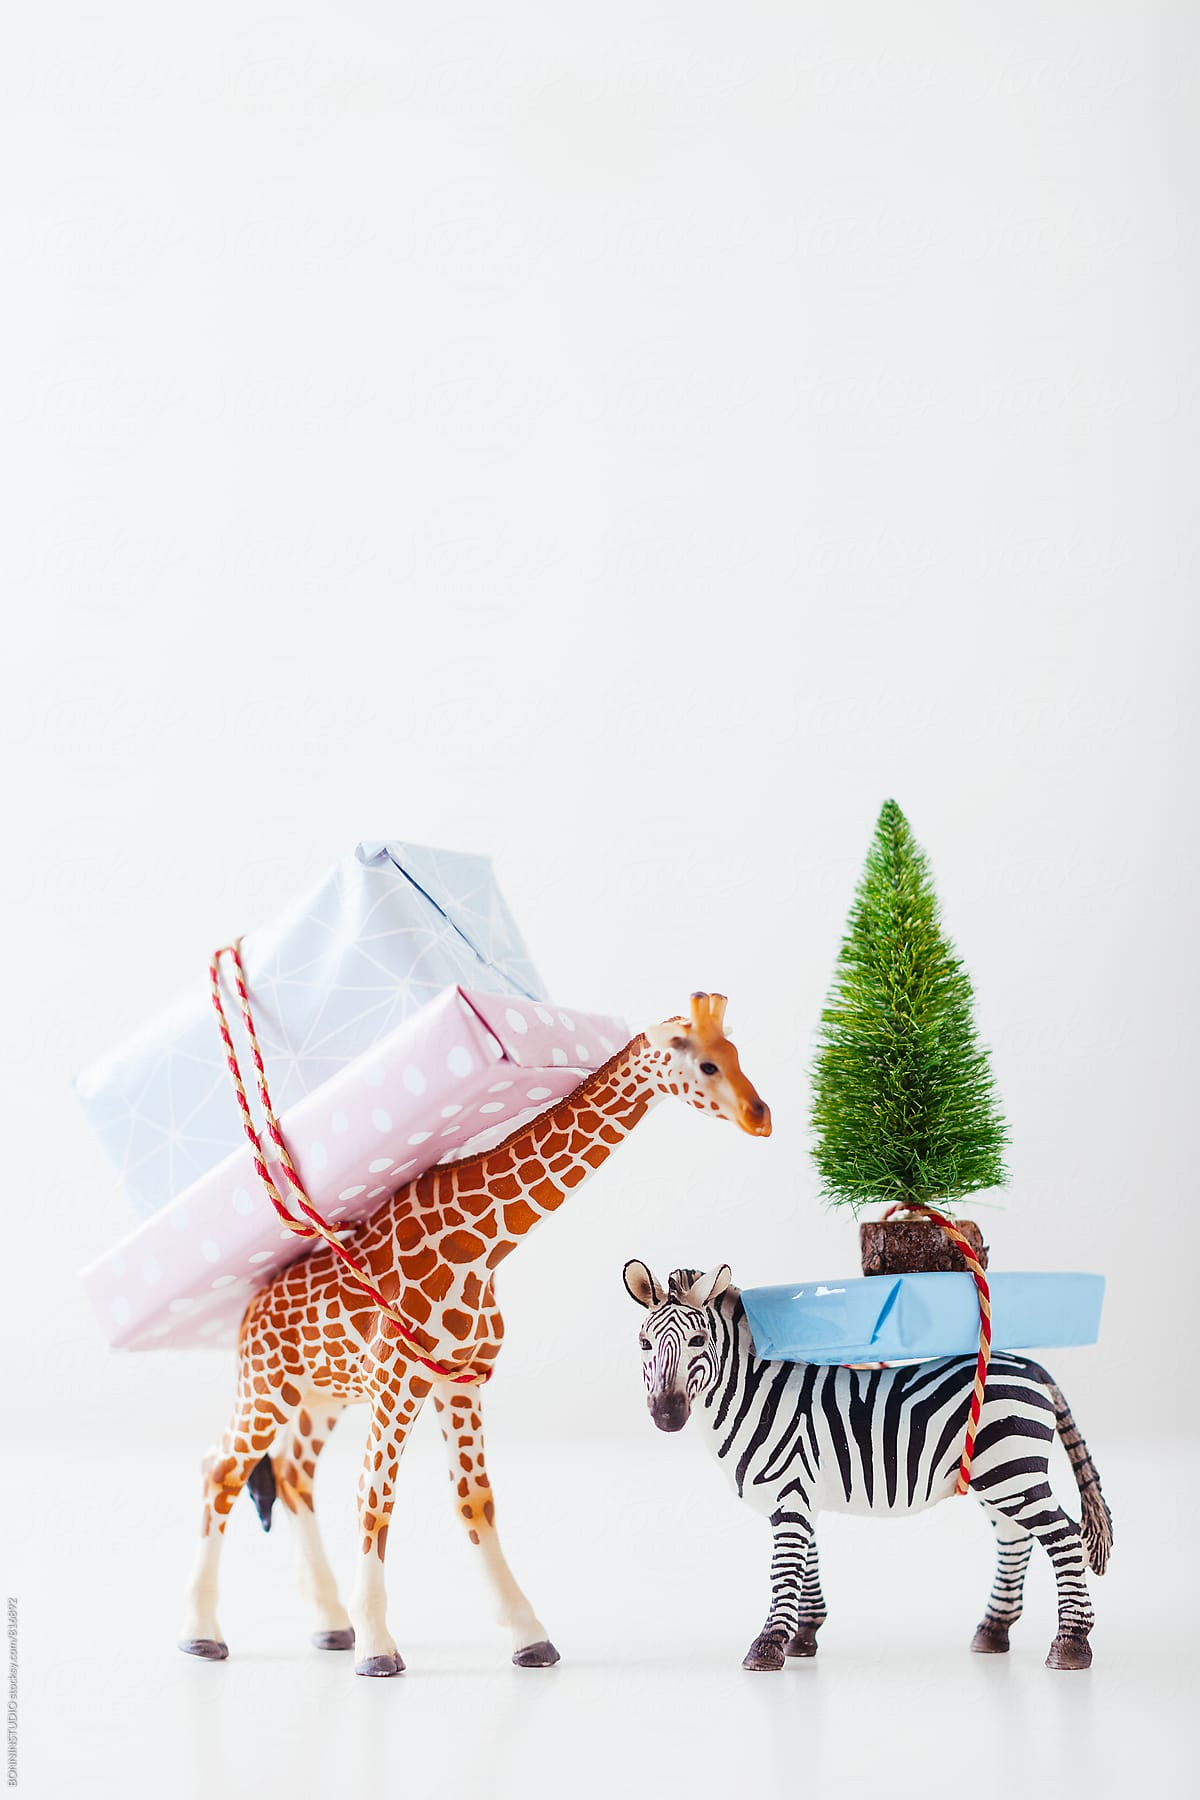 Toy Giraffe And Zebra Carrying Christmas Gifts On White. | Stocksy ...